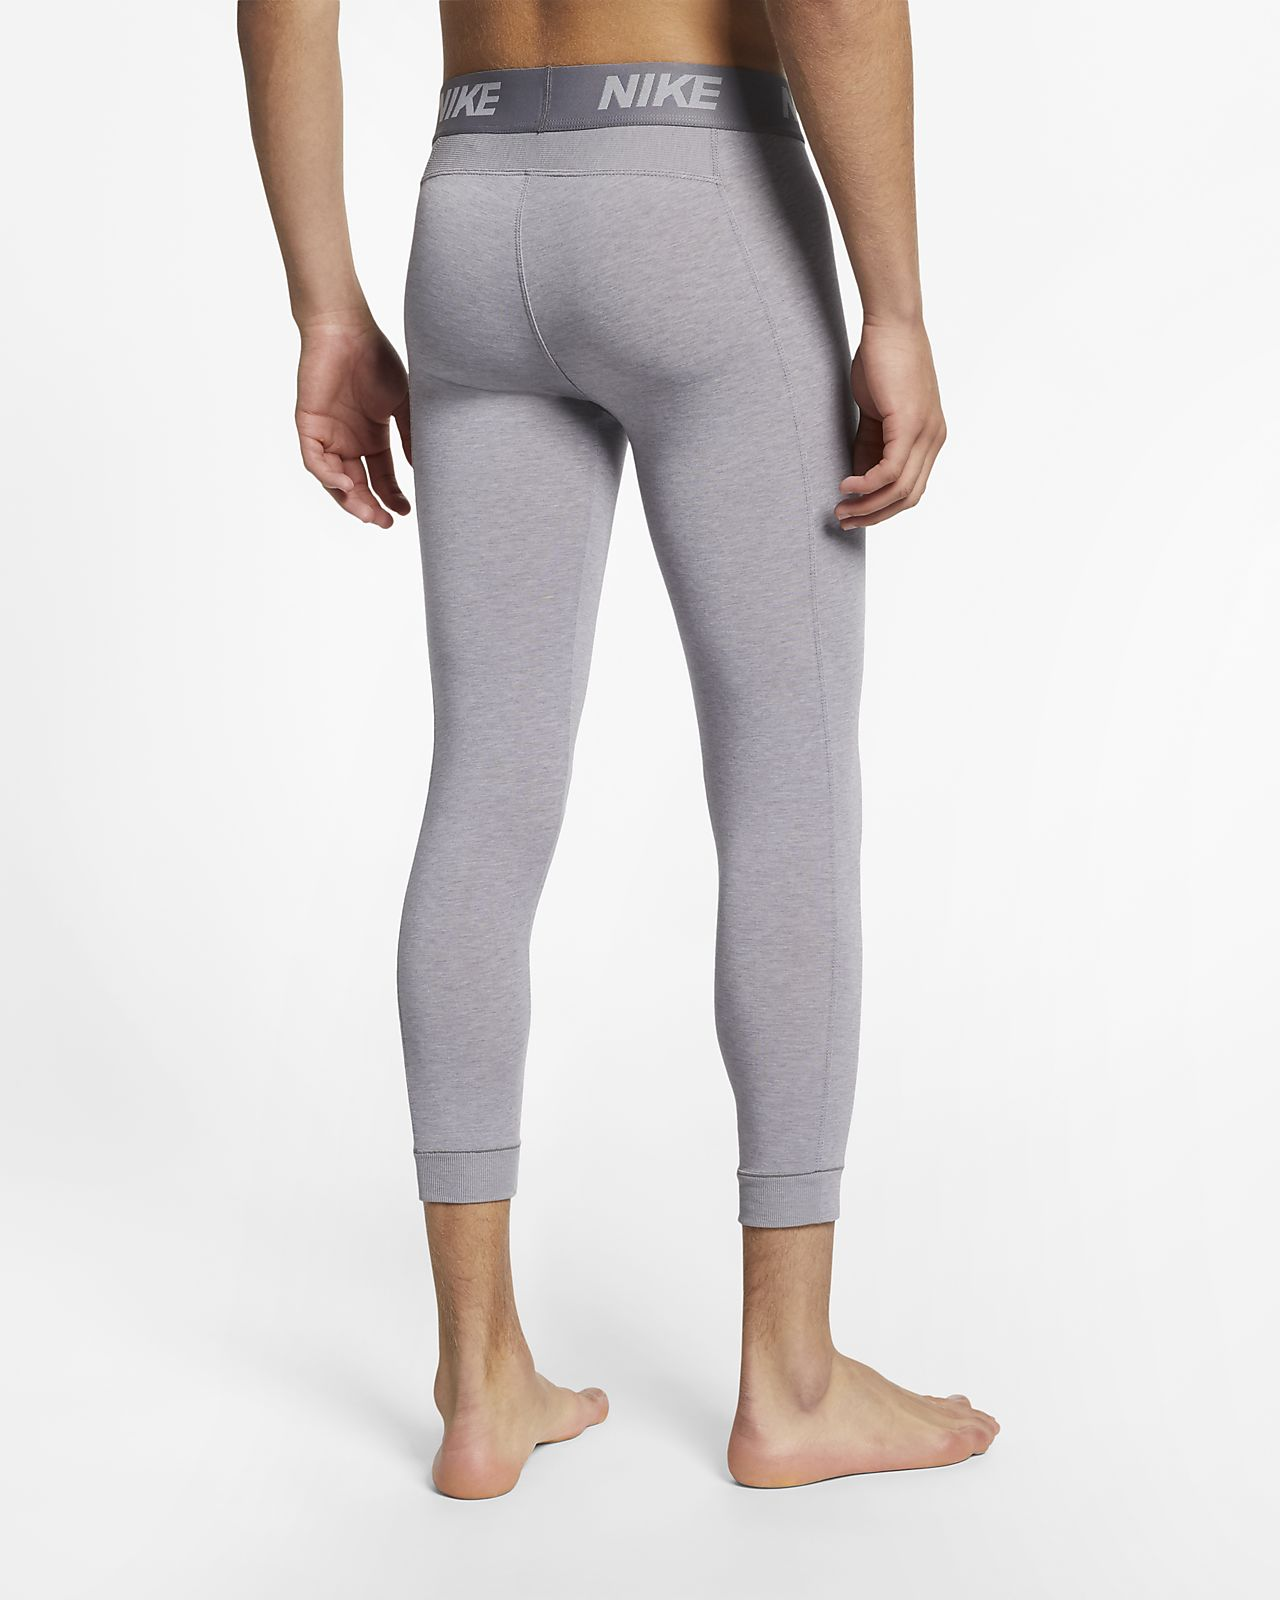 ba996d39e77a46 Nike Dri-FIT Men s 3 4 Yoga Training Tights. Nike.com